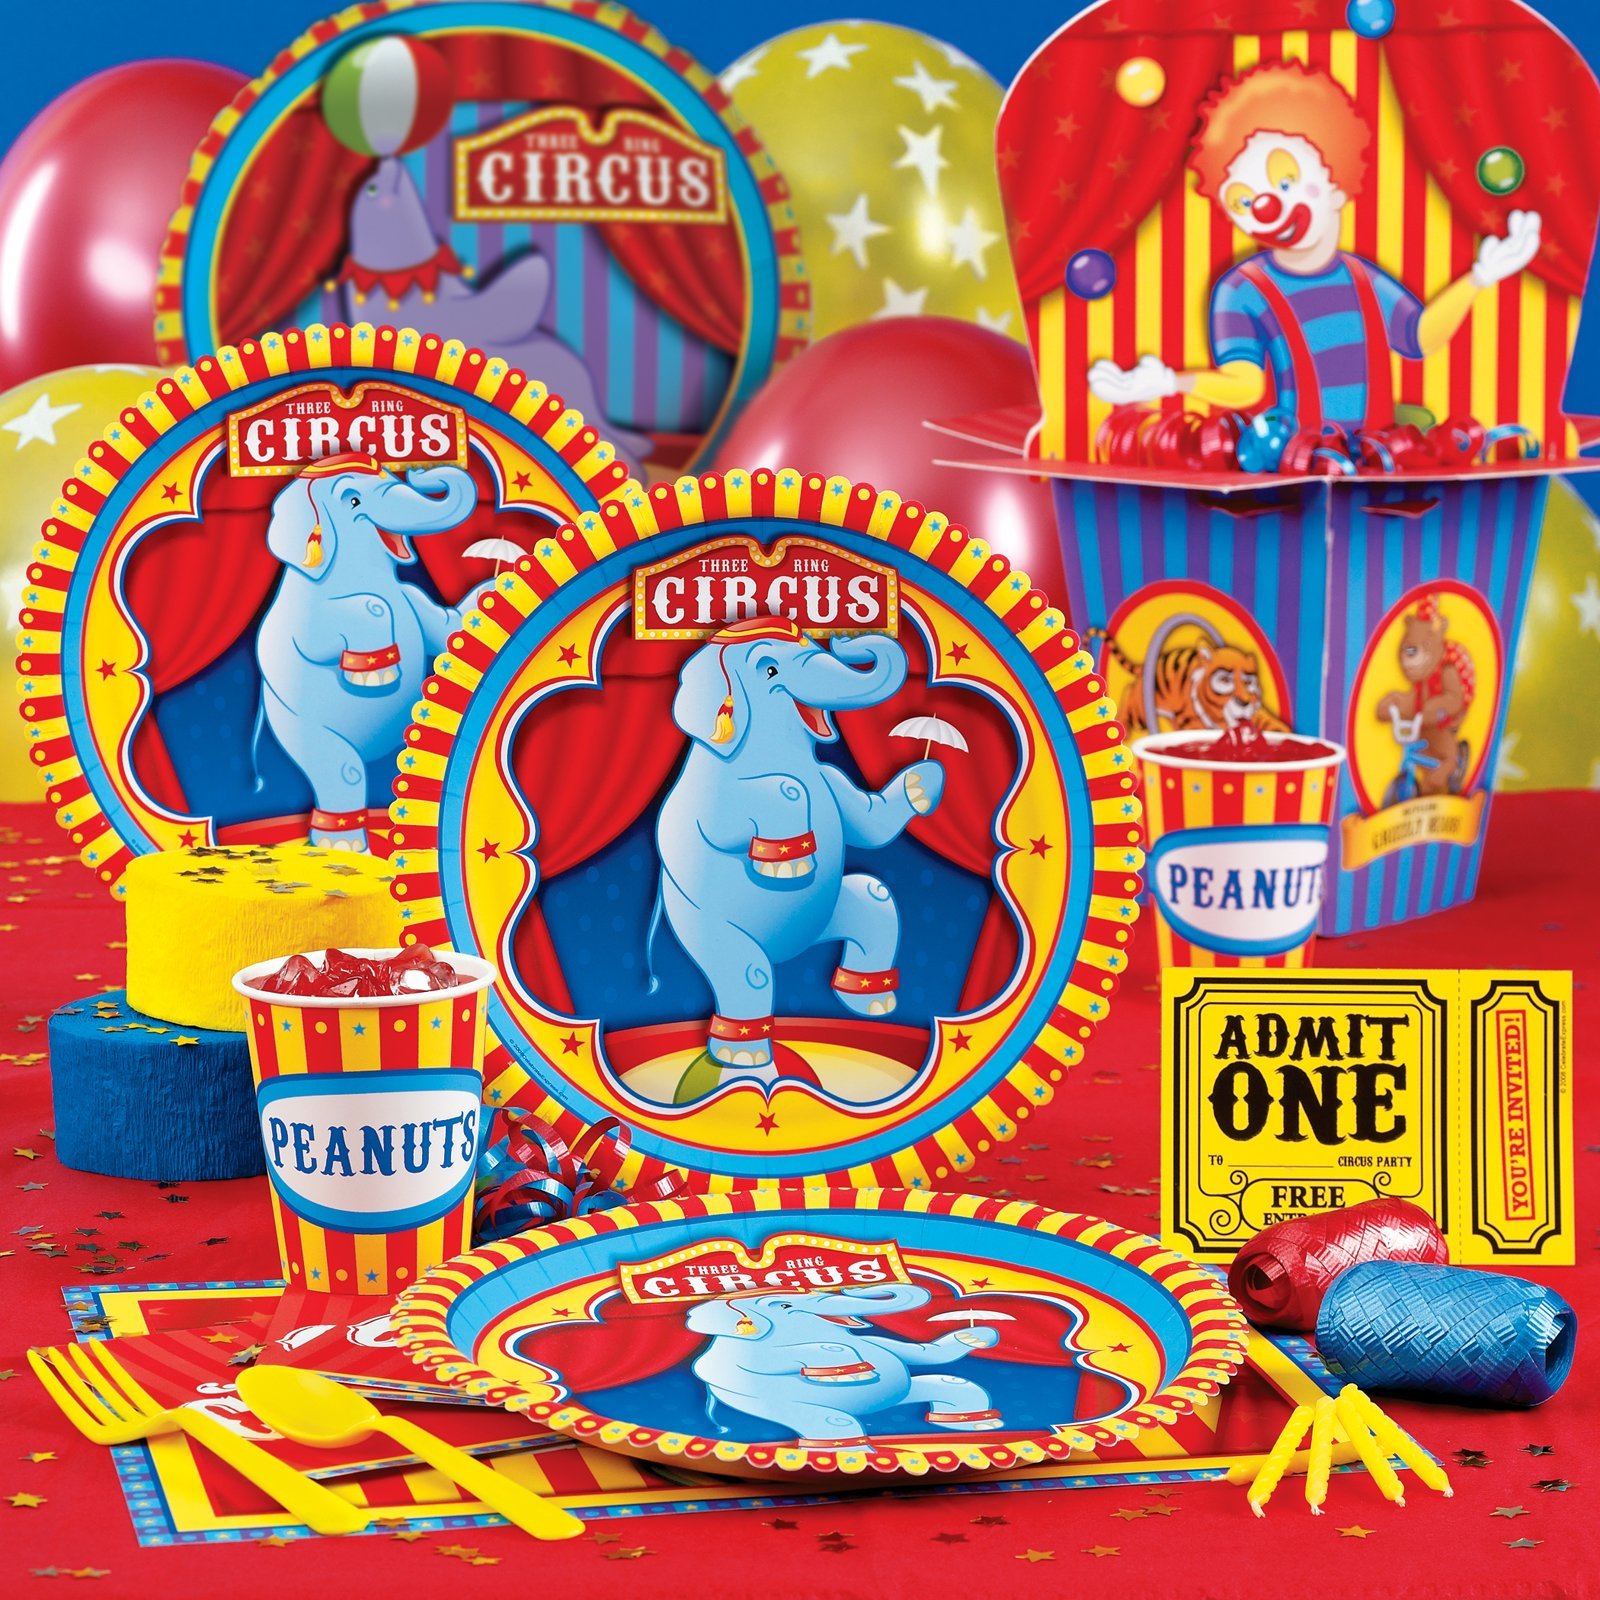 Carnival Circus Clown Theme Birthday Party